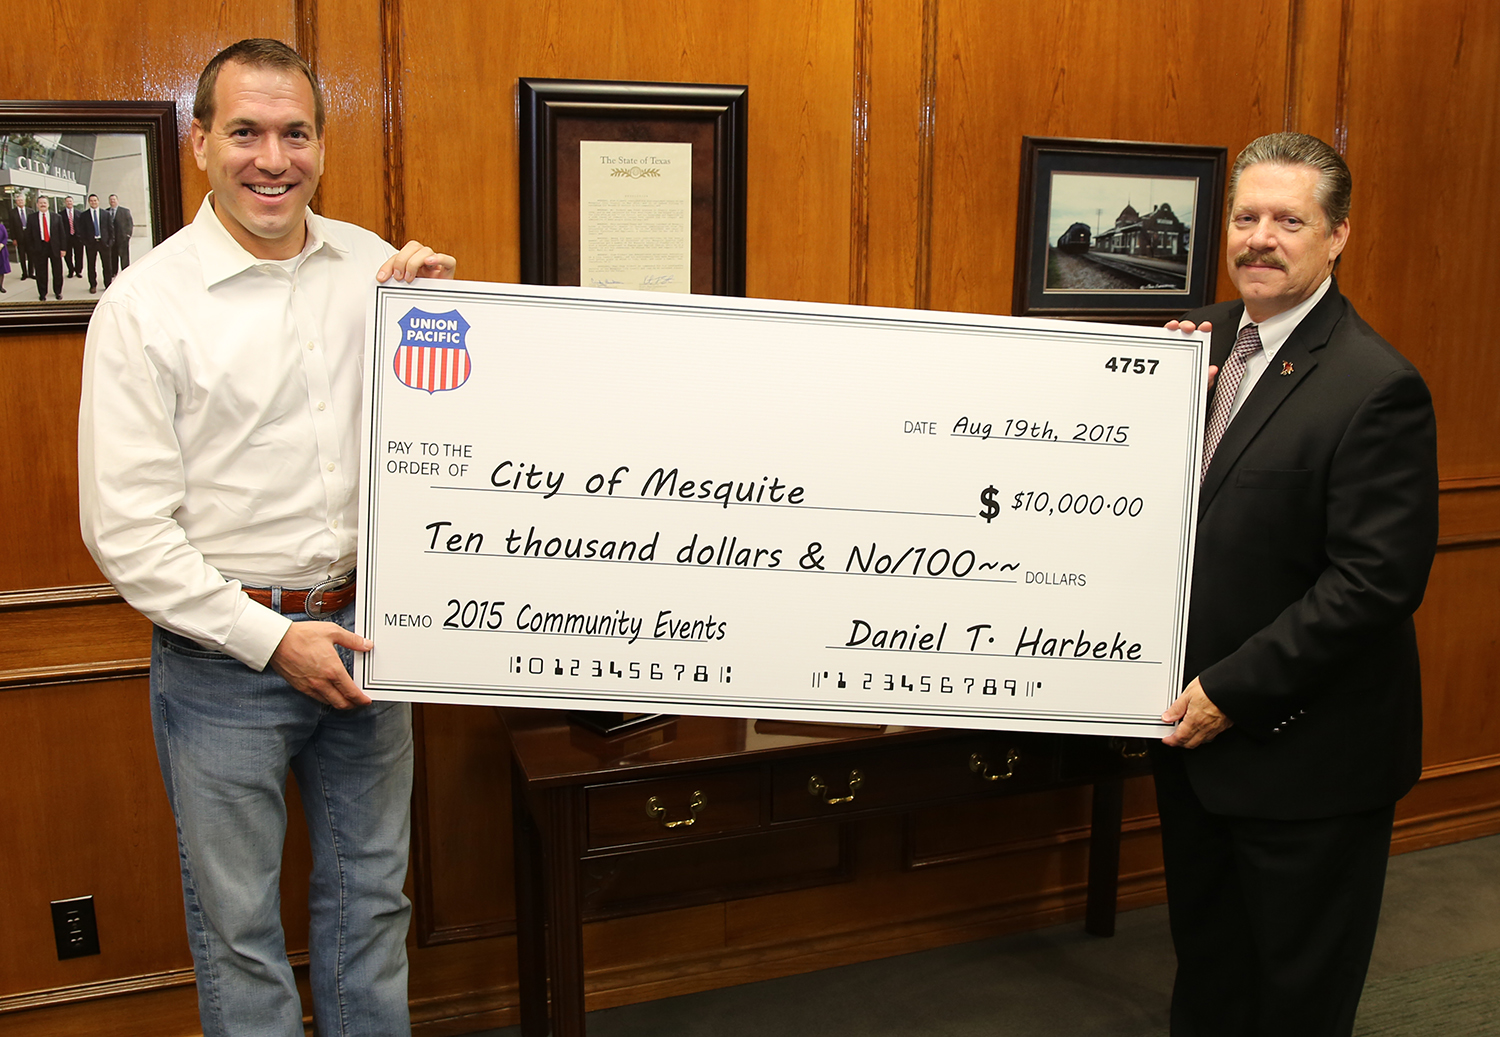 8-20-15 UnionPacific-Daniel Harbeke and MayorPickett.jpg